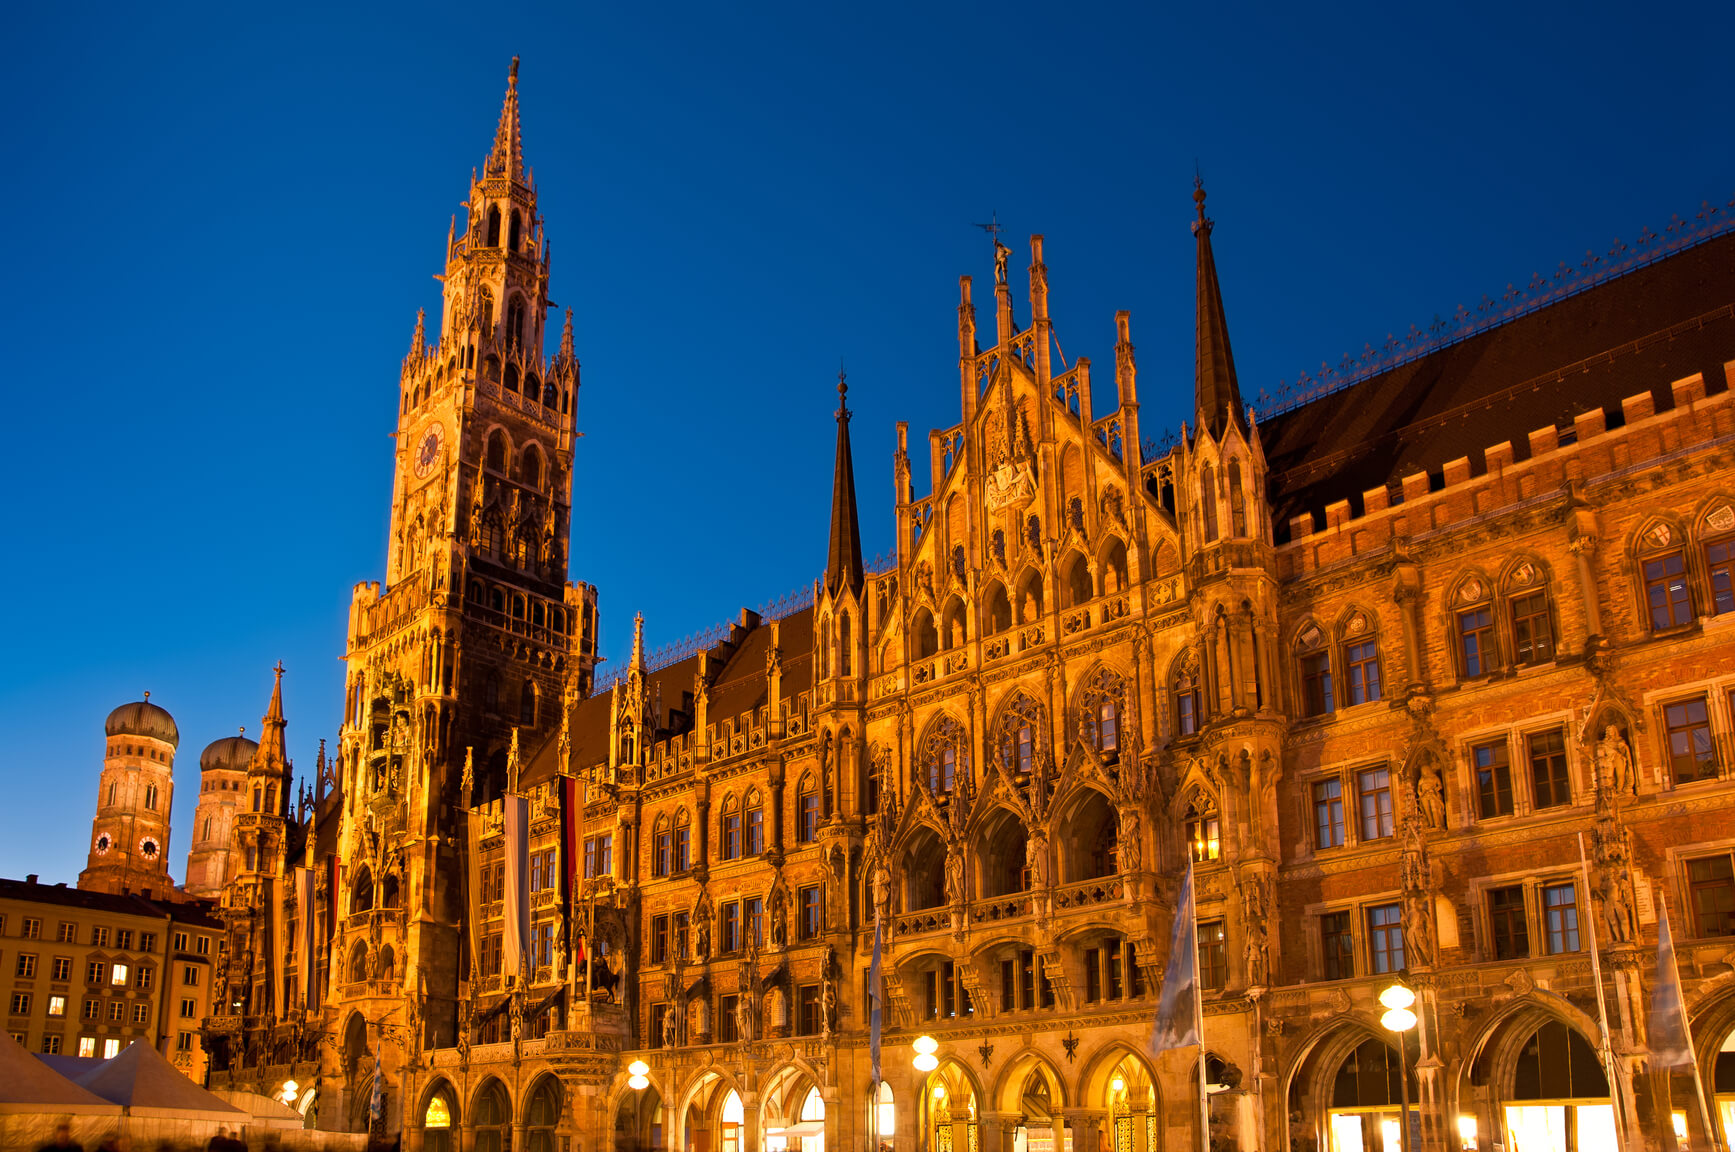 Flight deals from US cities to Munich, Germany | Secret Flying